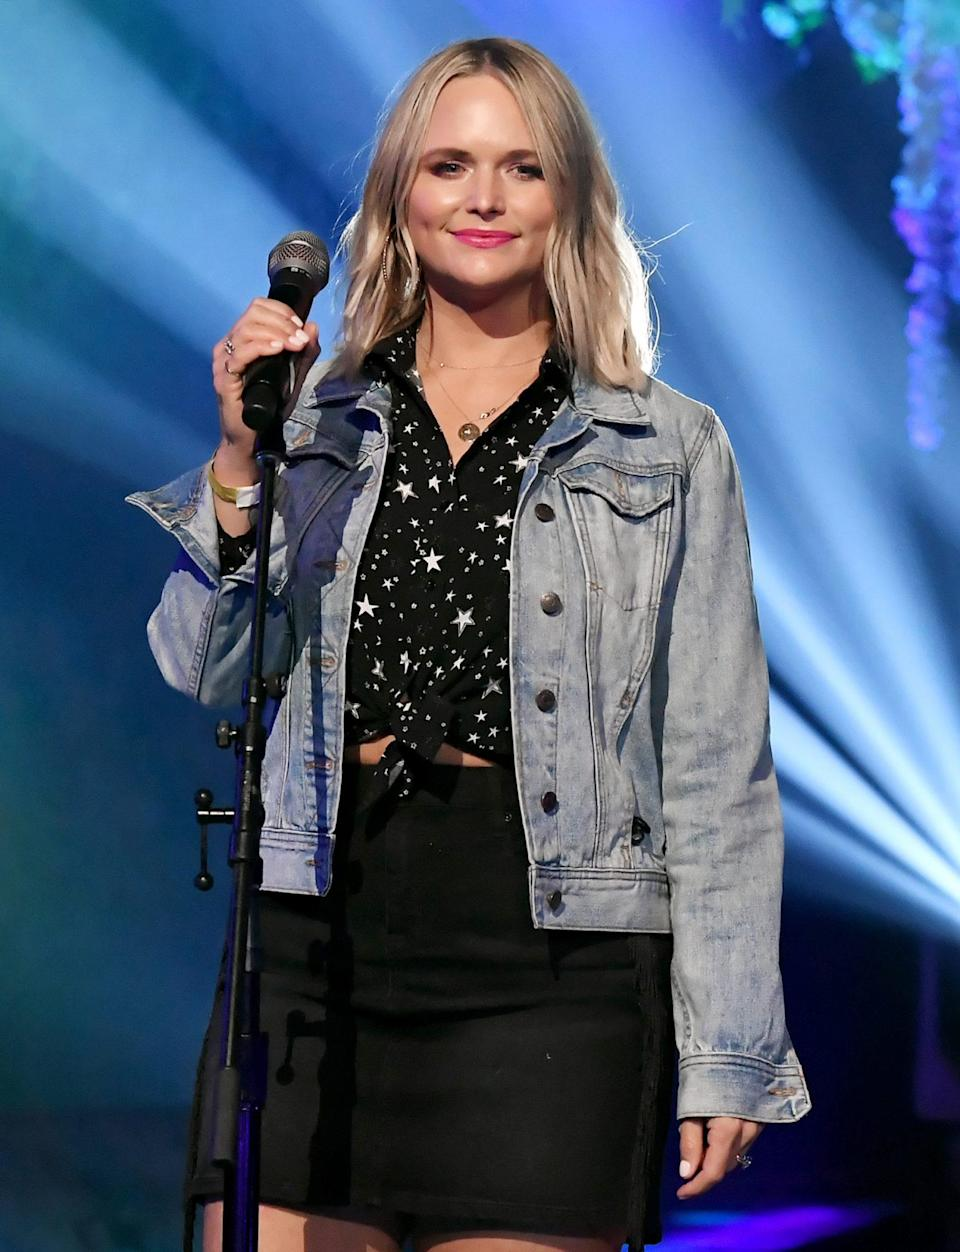 <p>Miranda Lambert rehearses onstage for the 63rd annual Grammy Awards at the Los Angeles Convention Center on Wednesday in L.A.</p>